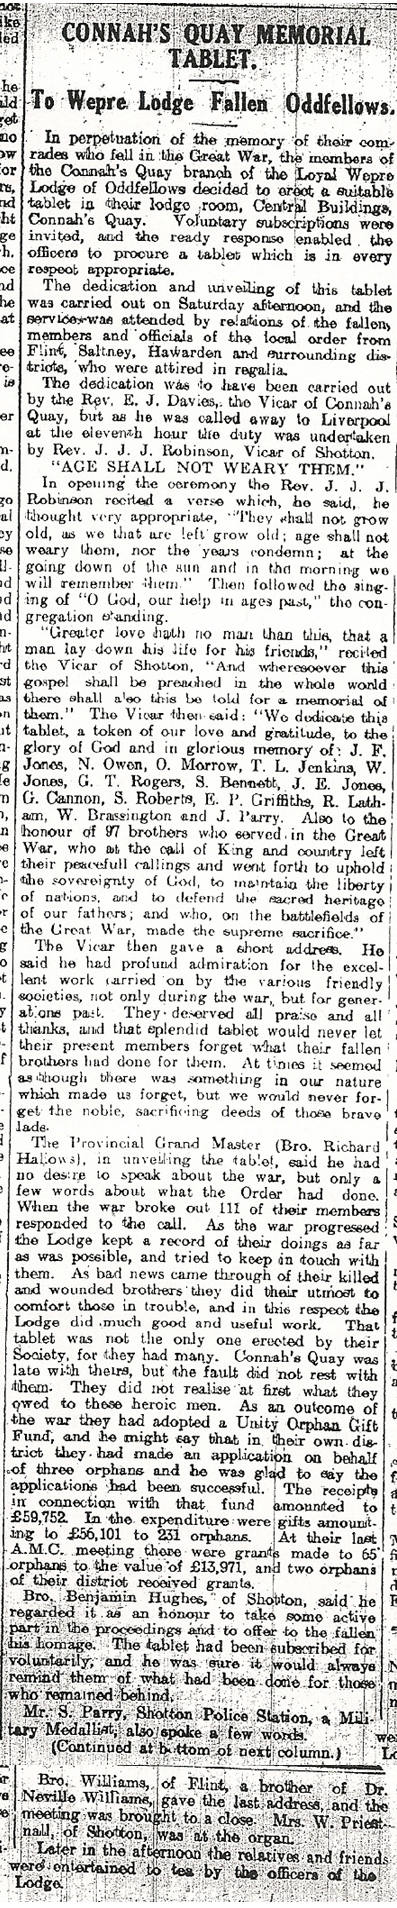 Wepre Lodge Fallen Oddfellows. CQ Mold, Deeside & Buckley Leader 3rd Oct 1924